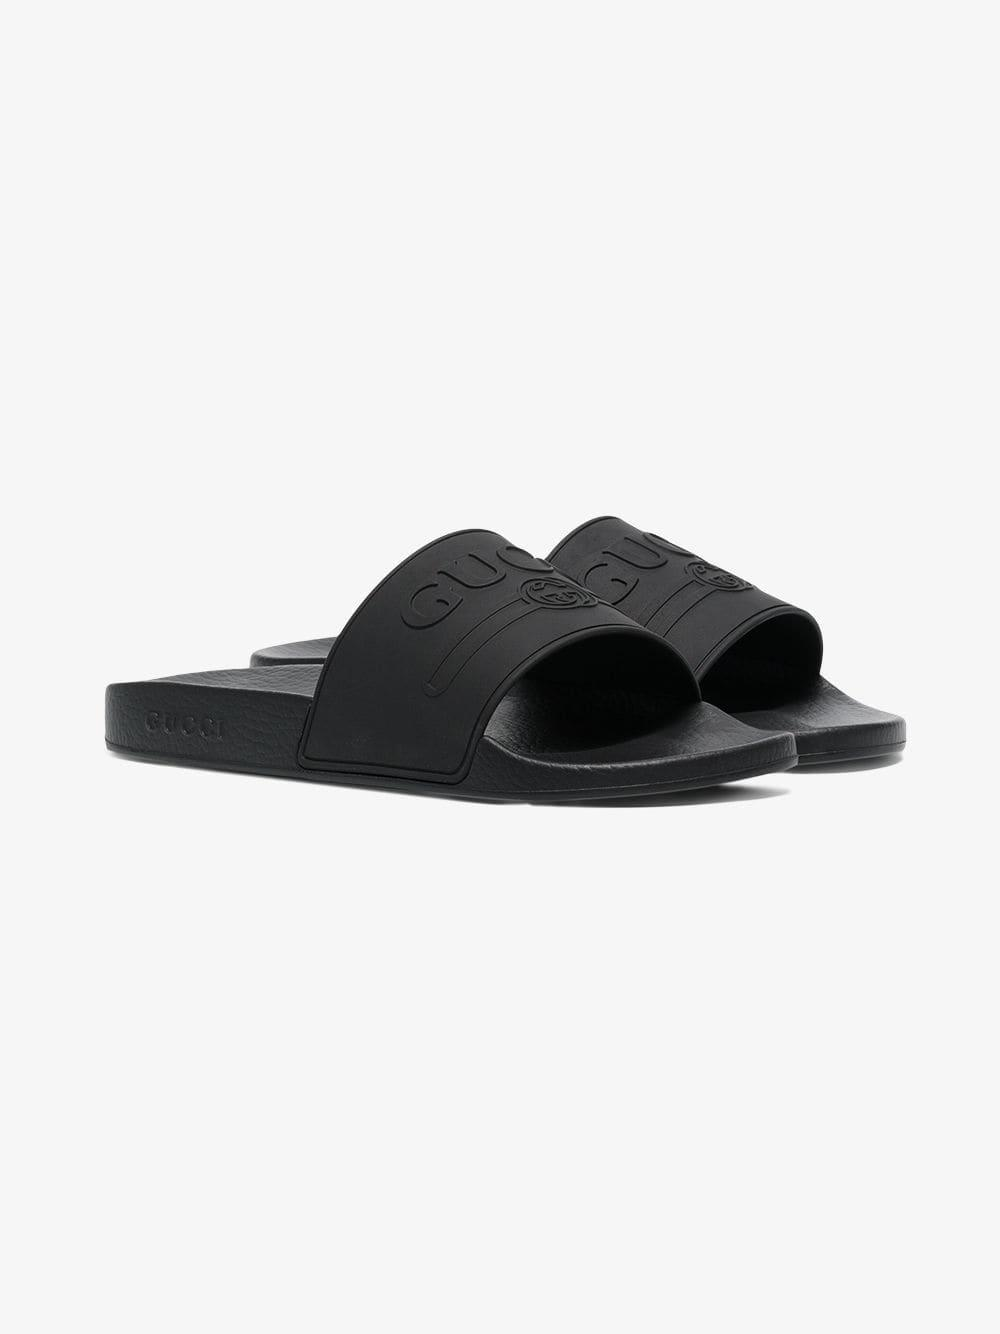 d764ac7e3db Lyst - Gucci Logo Rubber Slide Sandal in Black for Men